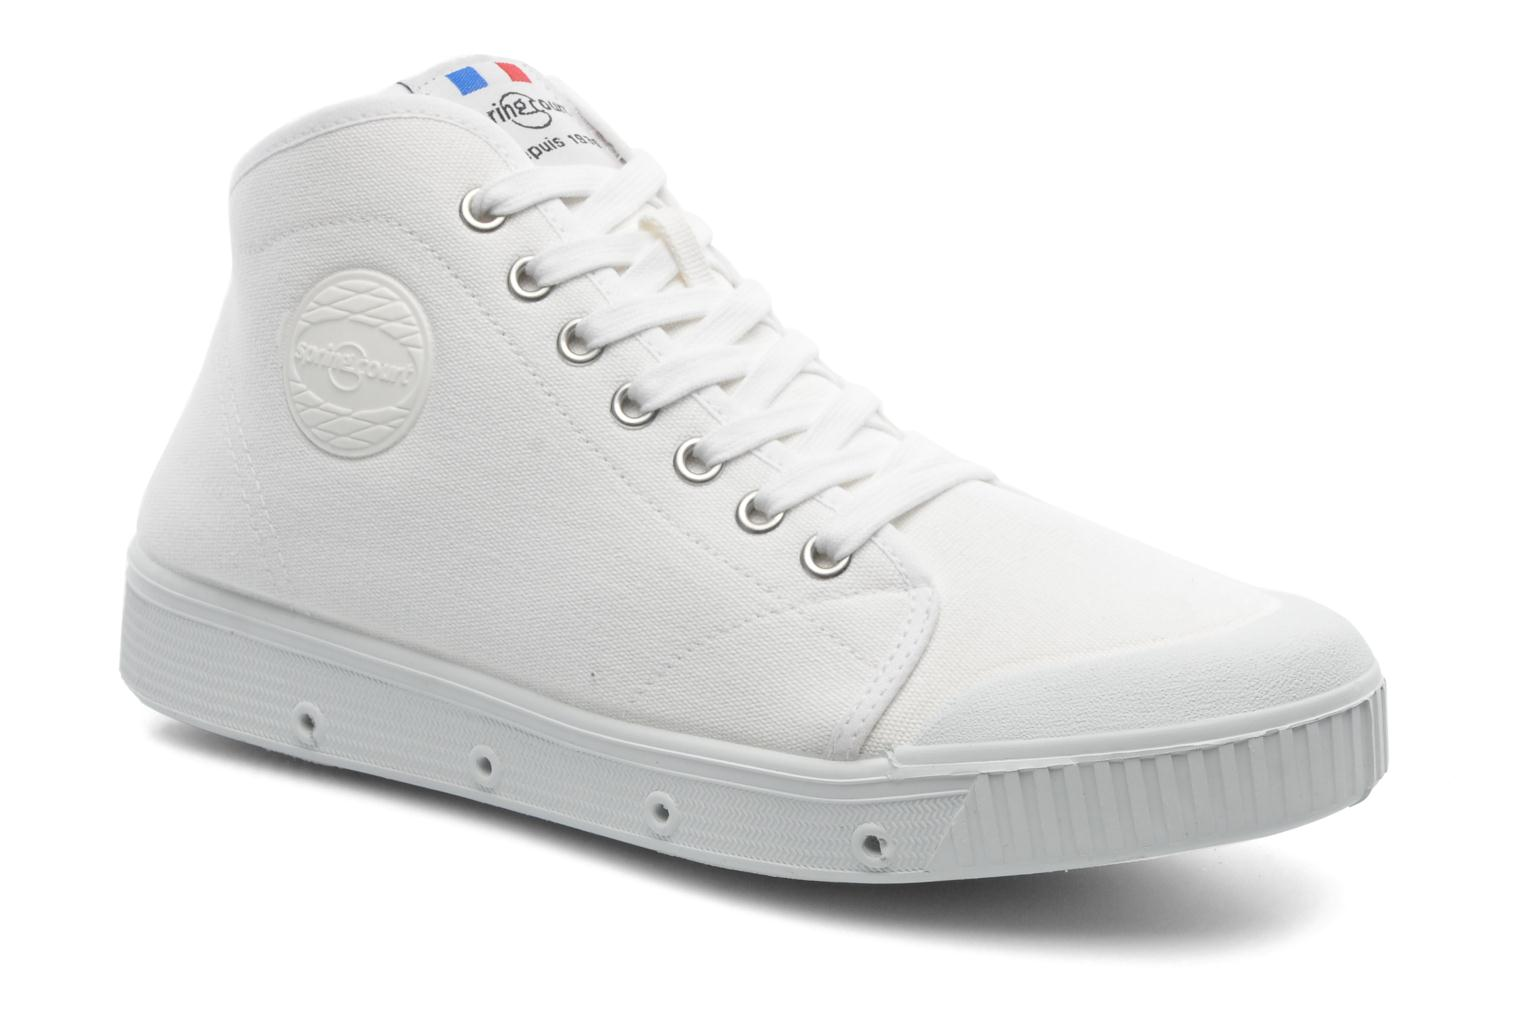 Sneakers B2 Classic M by Spring Court